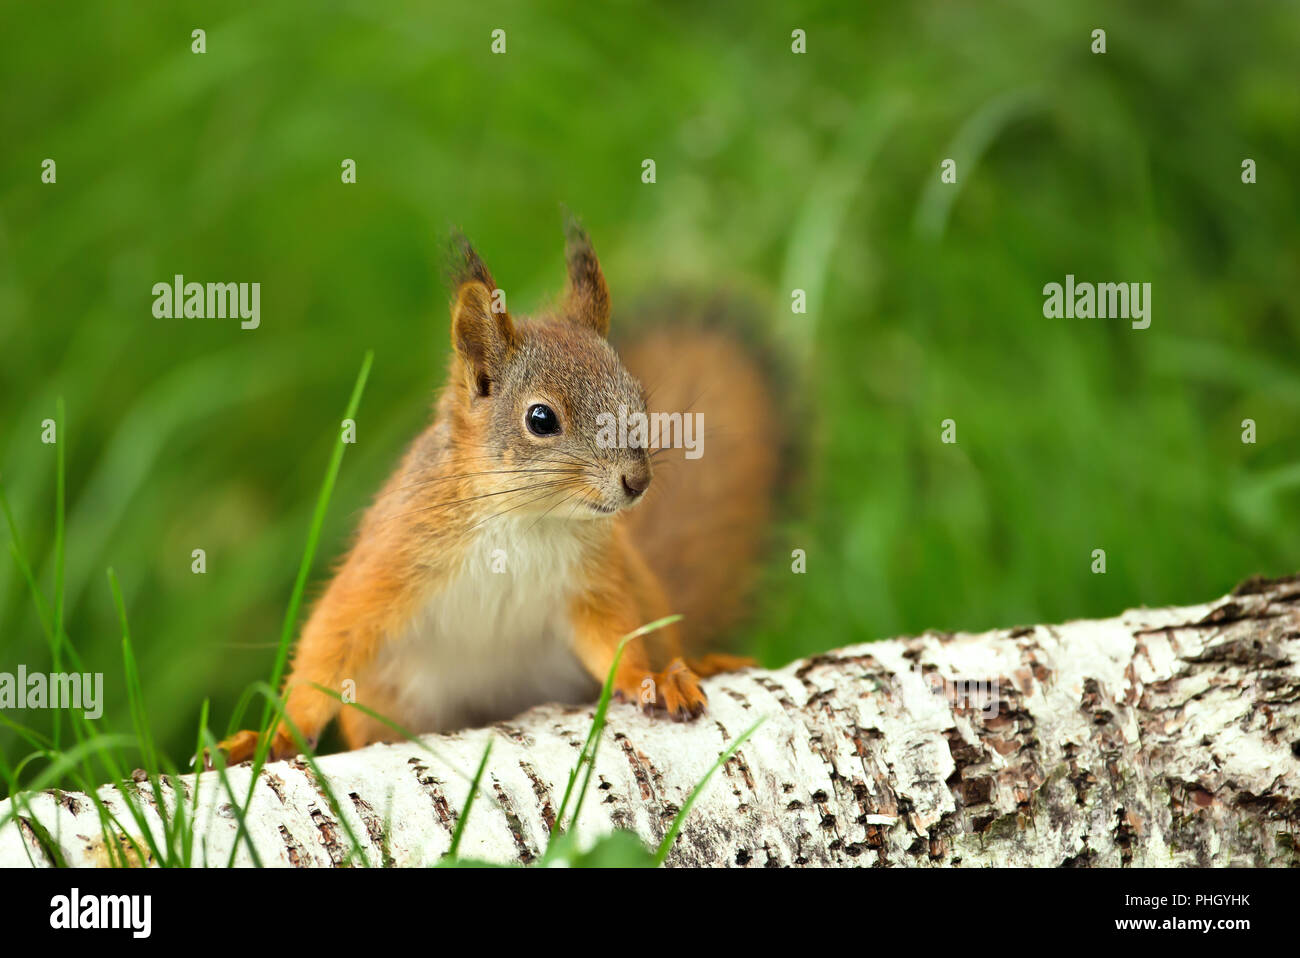 Close up of a curious Red squirrel (Sciurus Vulgaris) in the grass by a birch log. - Stock Image